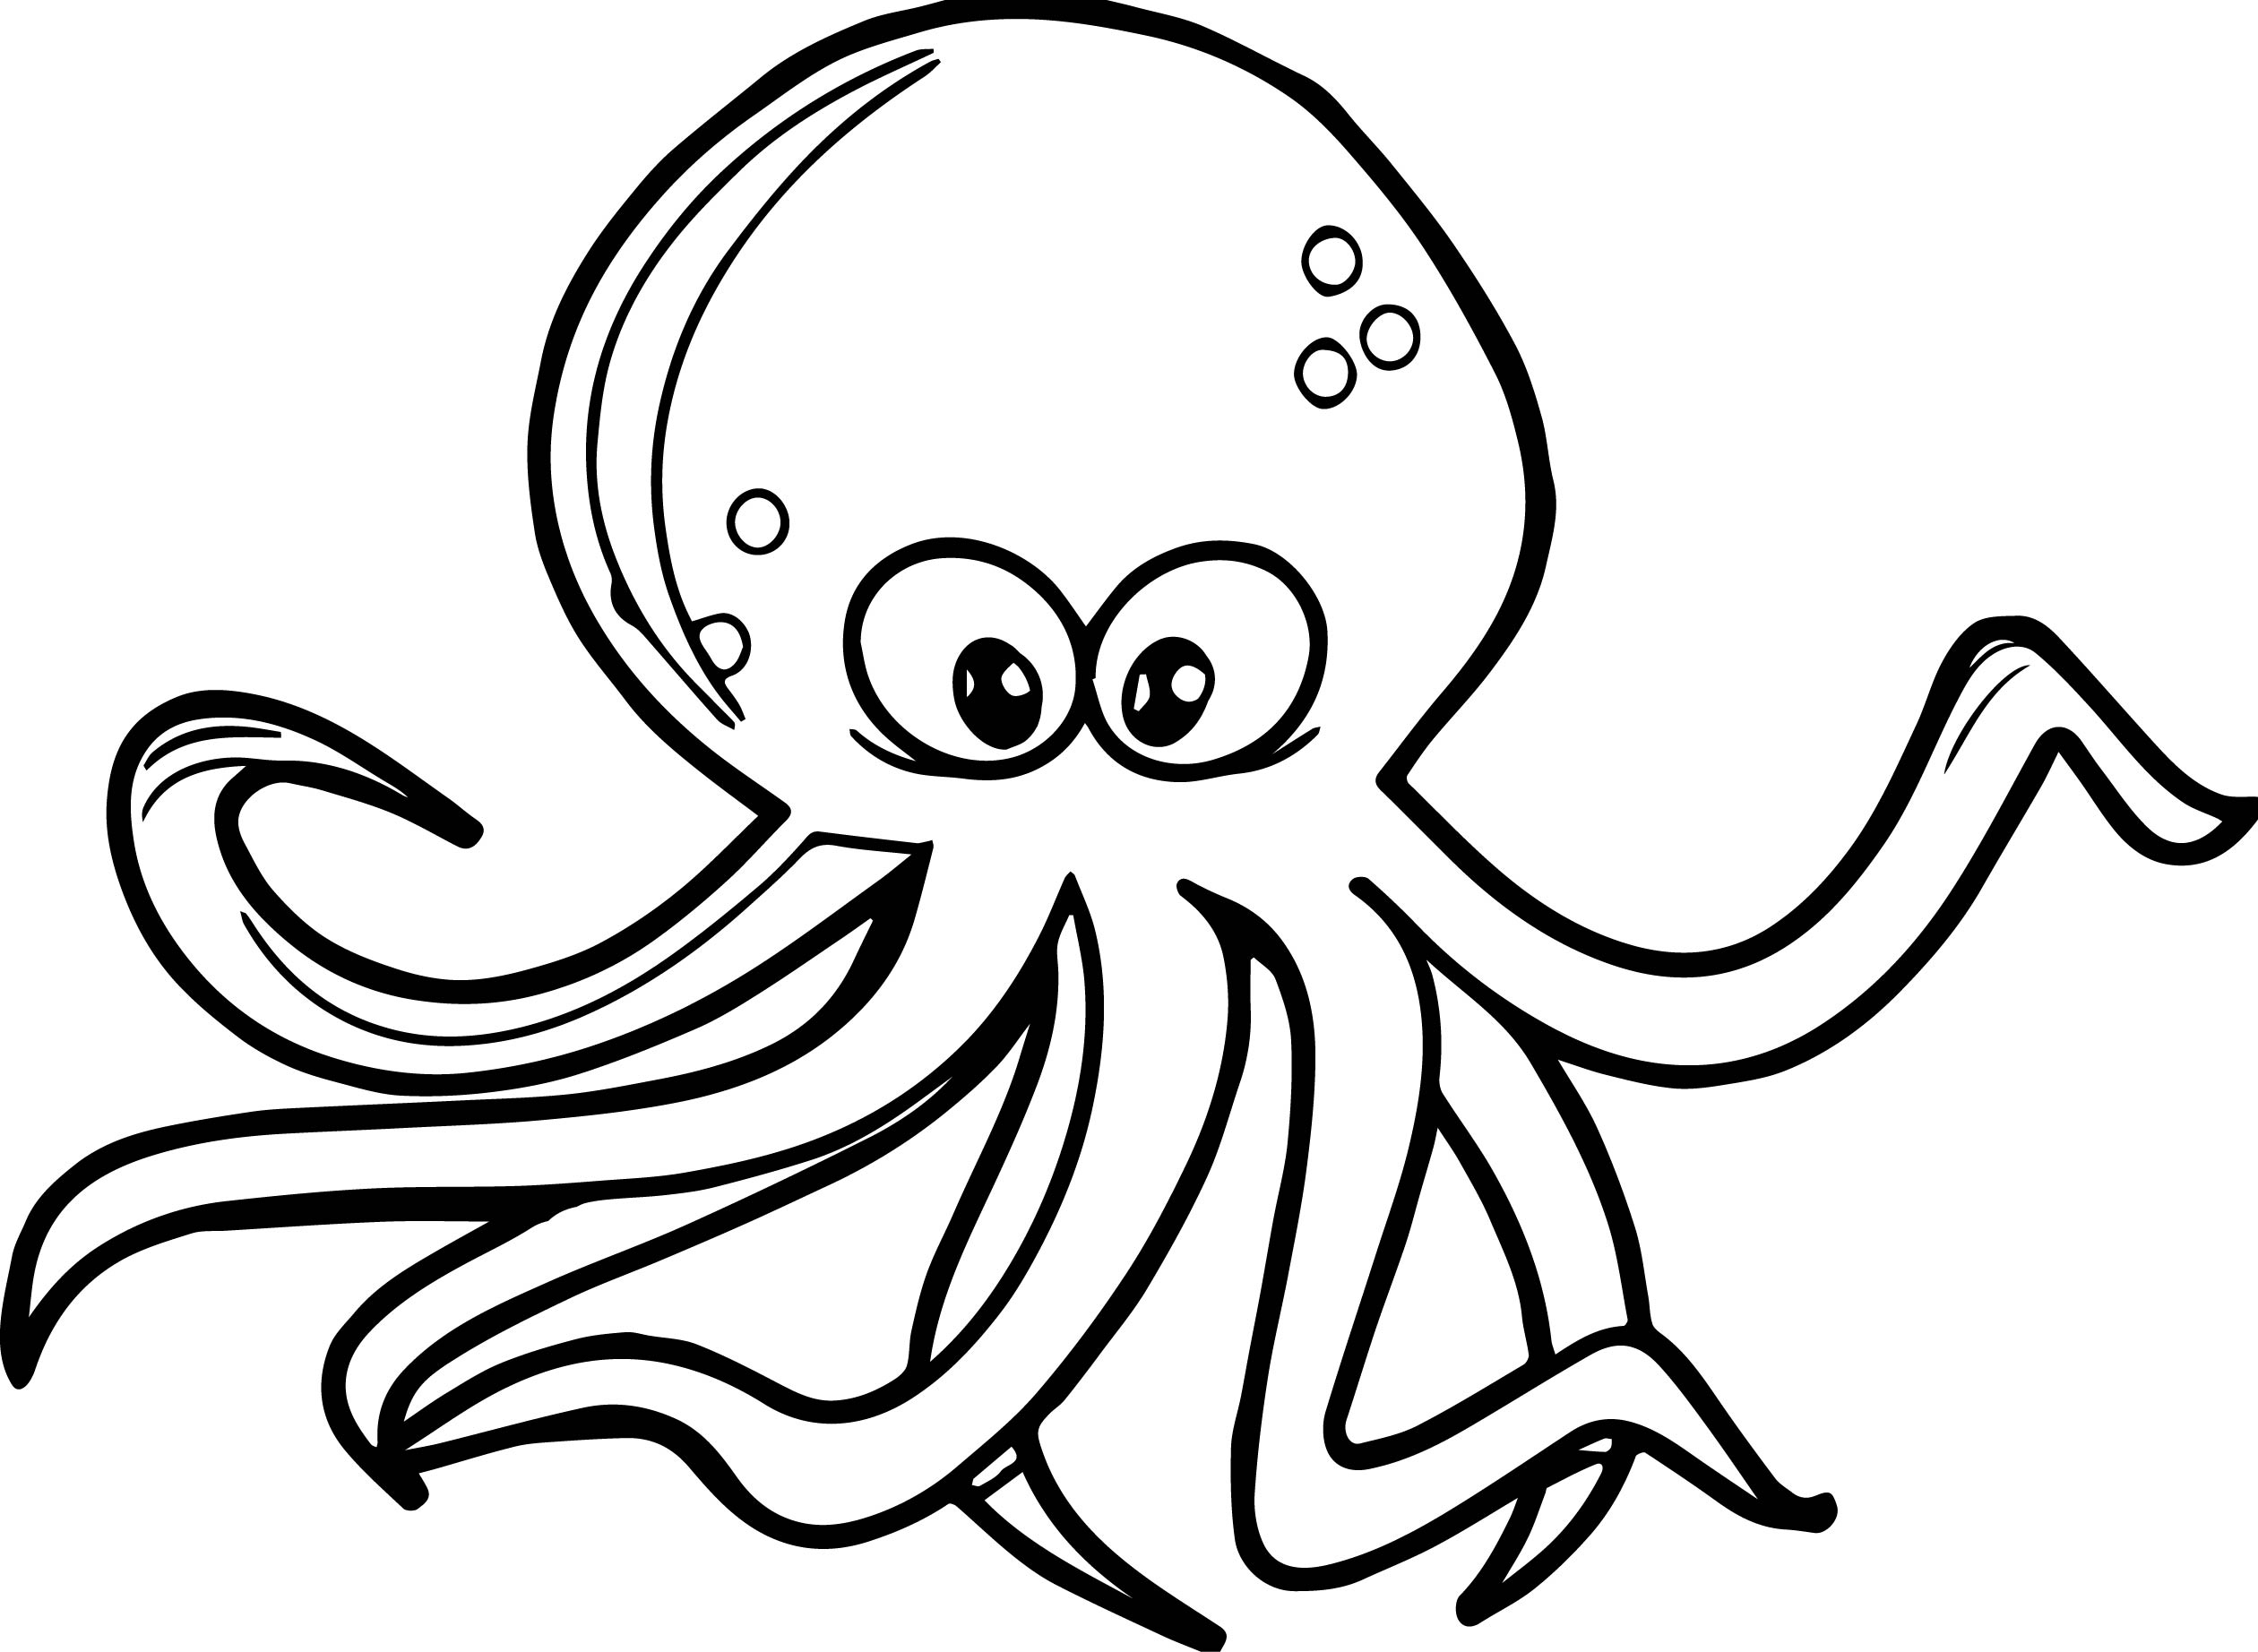 realistic octopus coloring page realistic octopus coloring page clipart panda free realistic octopus coloring page